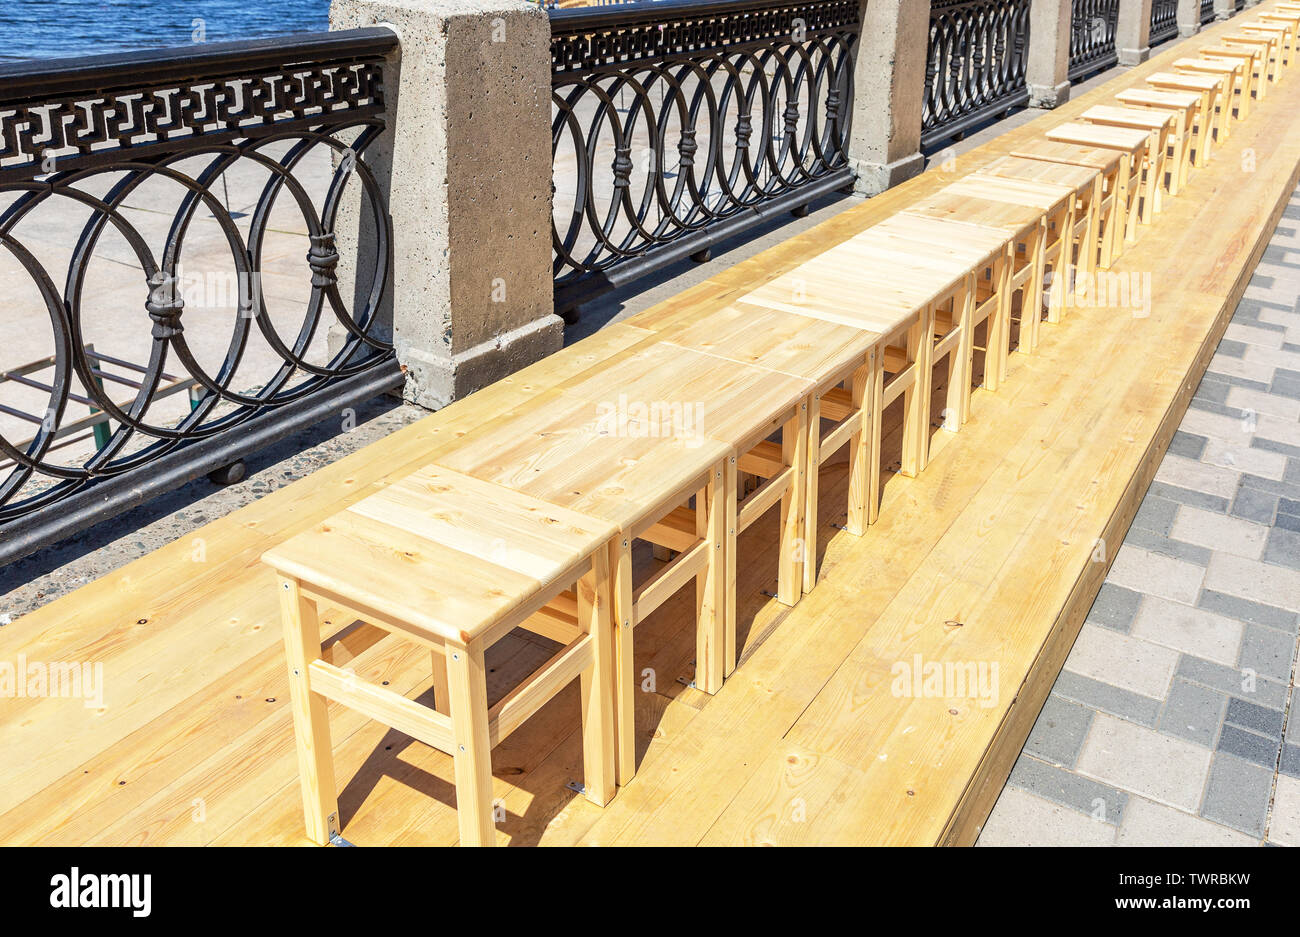 Wooden backless stools stand in a row on the city embankment - Stock Image